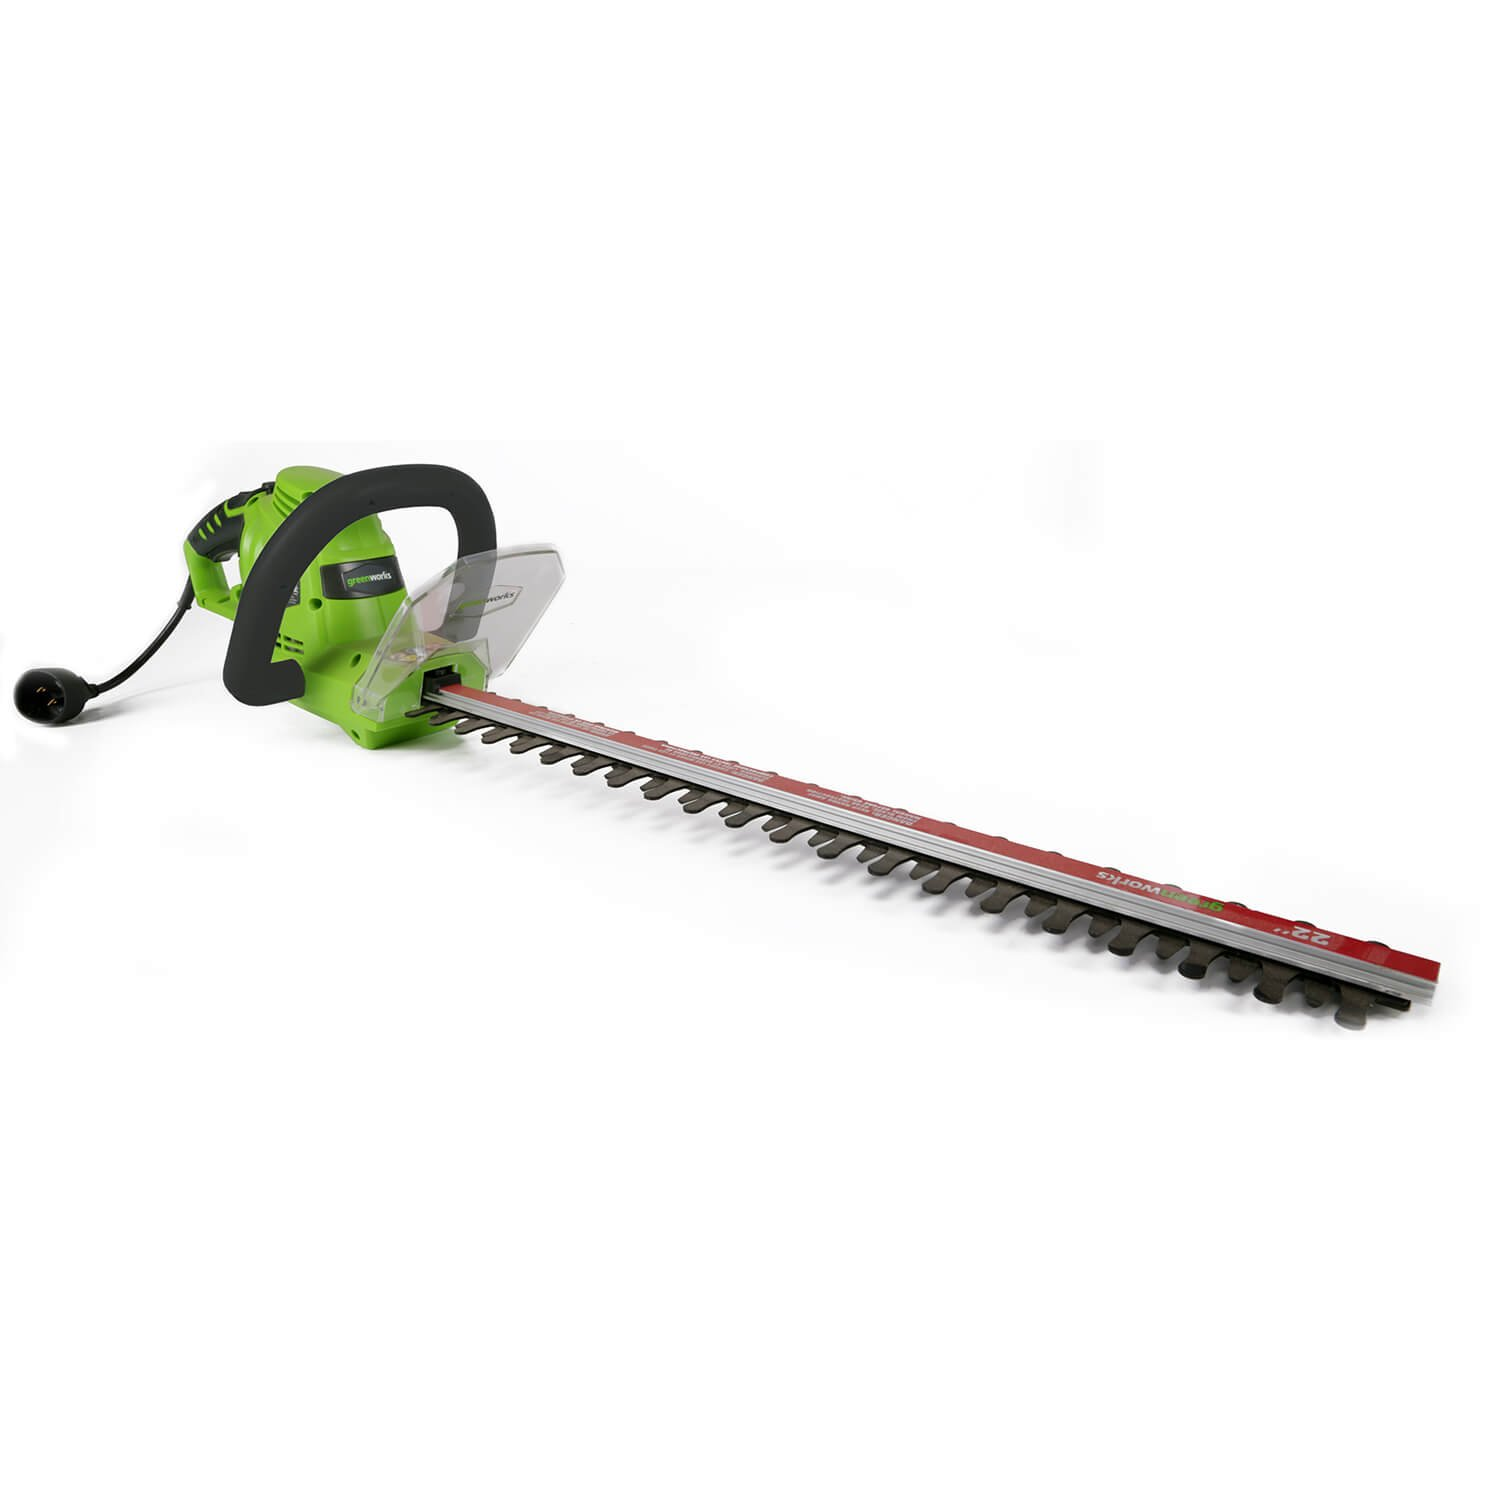 (22122) 22-Inch Dual-Action Corded Hedge Trimmer from Greenworks